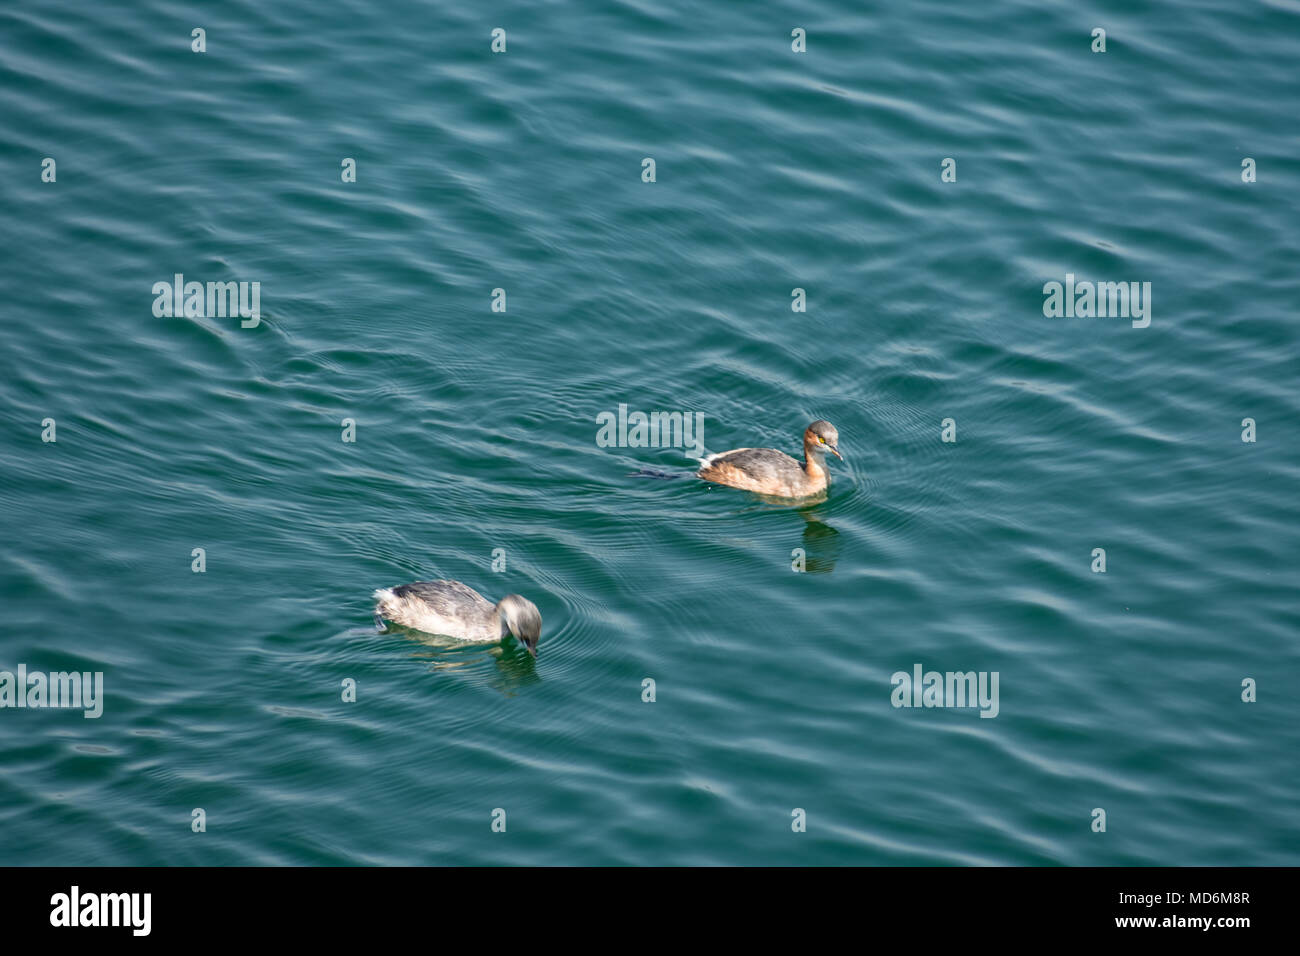 A couple of small duck swimming  & playing in a  water reservoir. Stock Photo